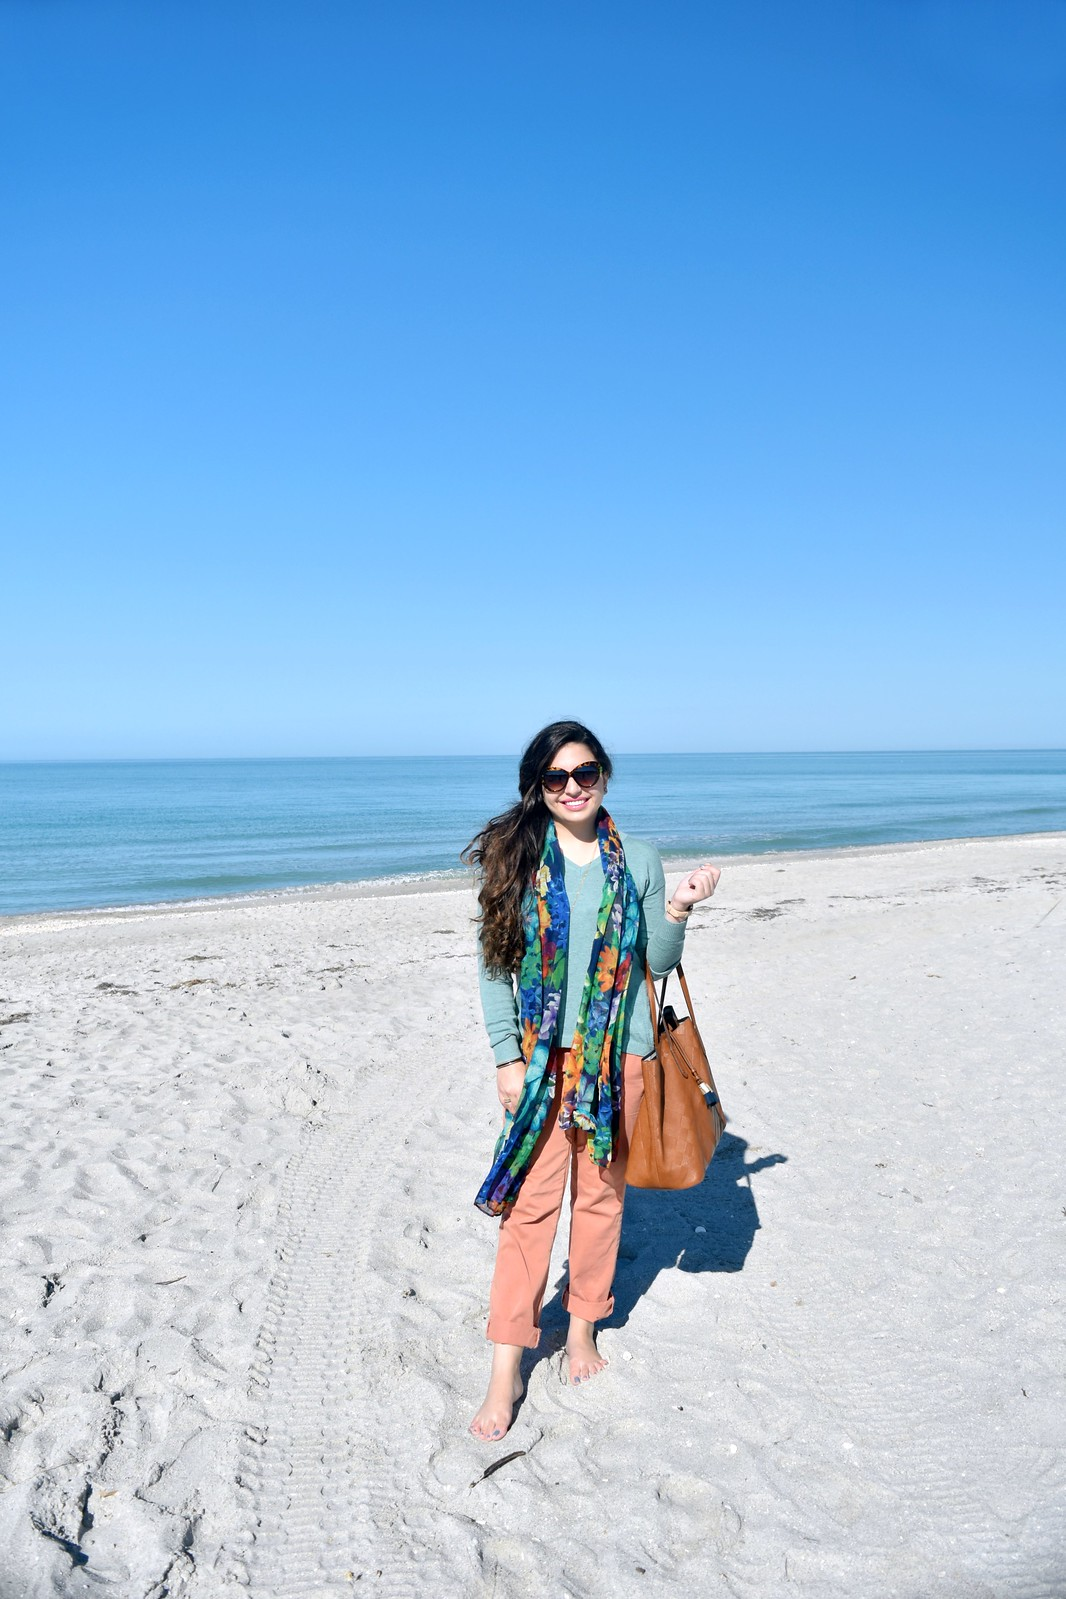 winter/spring beachy outfit